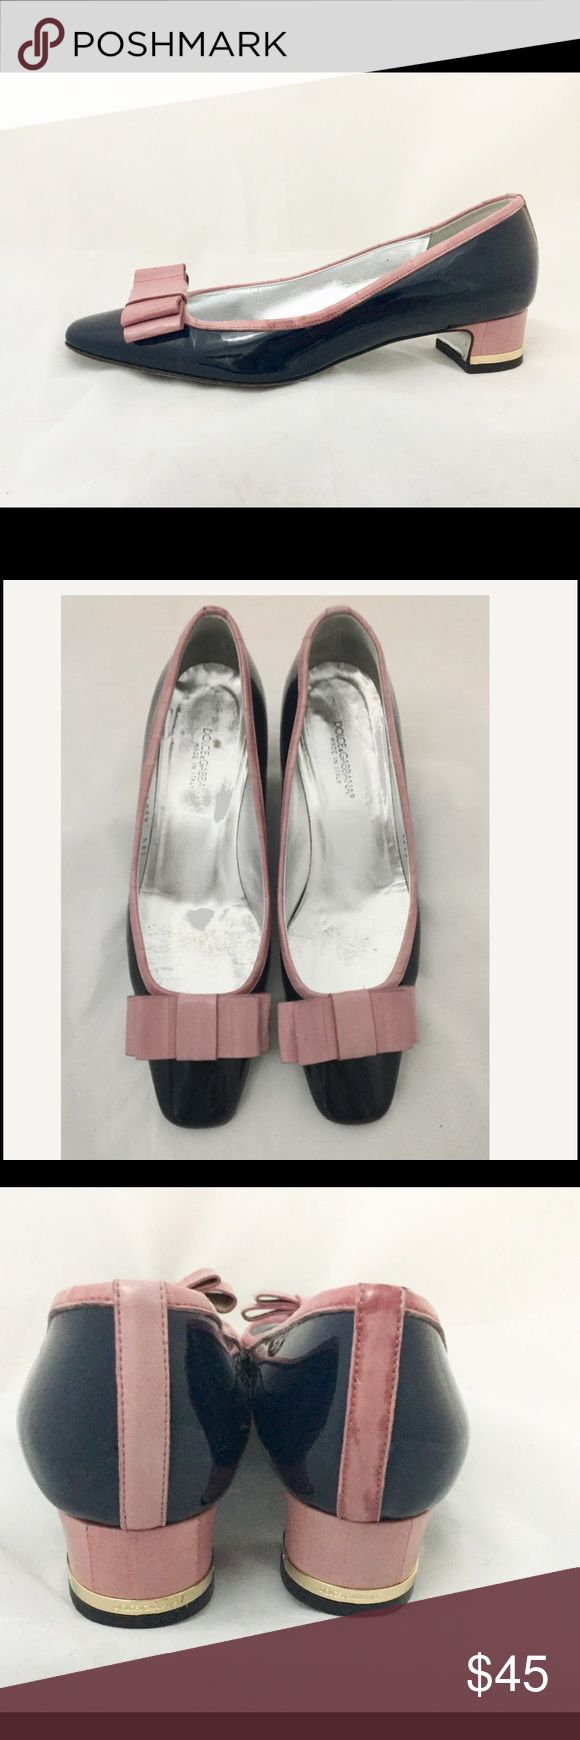 Dolce and Gabbana navy patent shoes with pink bows Dolce and Gabbana mod navy patent low heel pumps with pink eel skin bows and trims. Euro size 38 1/2. Us size similar to 8. Worn and there are scuffs on the sole. Little discoloration on back strip. Overall normal wear. Dolce & Gabbana Shoes Heels